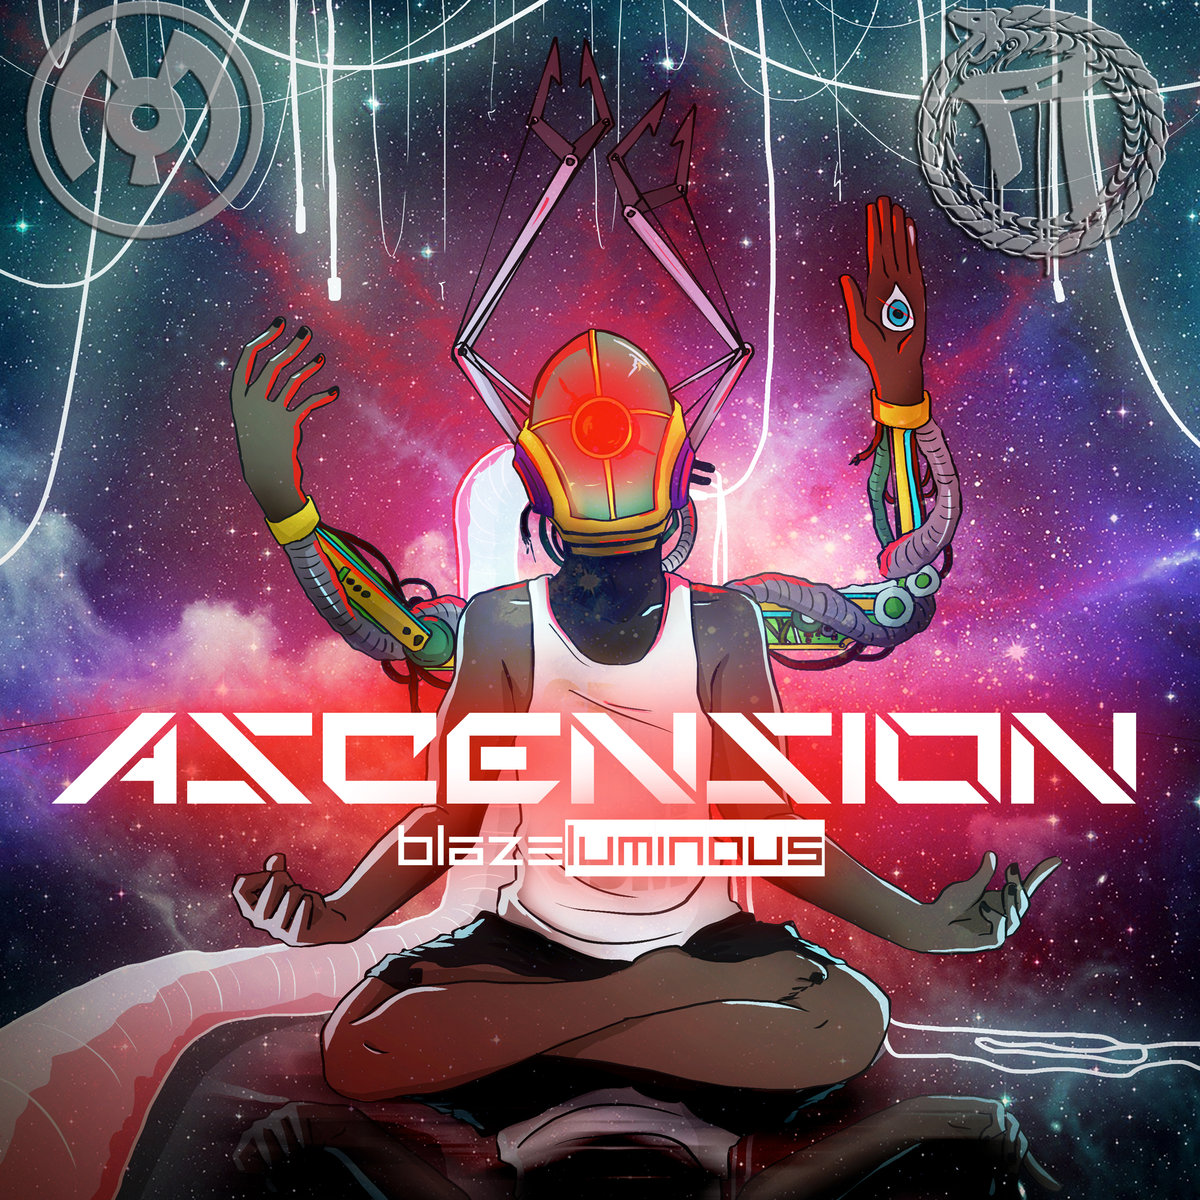 Blaze Luminious - Ascension @ 'Ascension' album (electronic, dubstep)